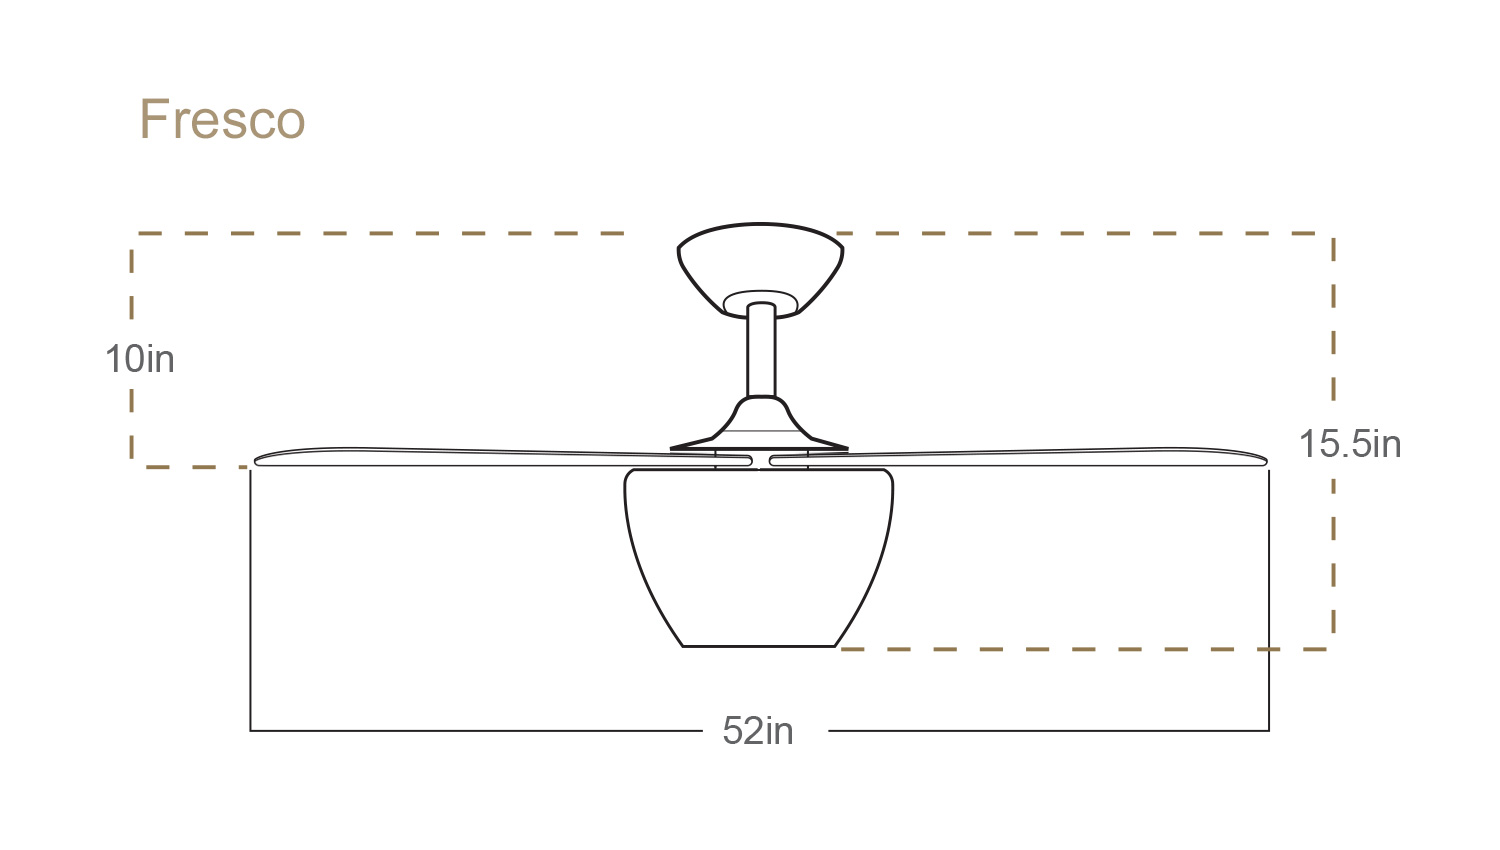 Fresco Ceiling Fan Dimensions